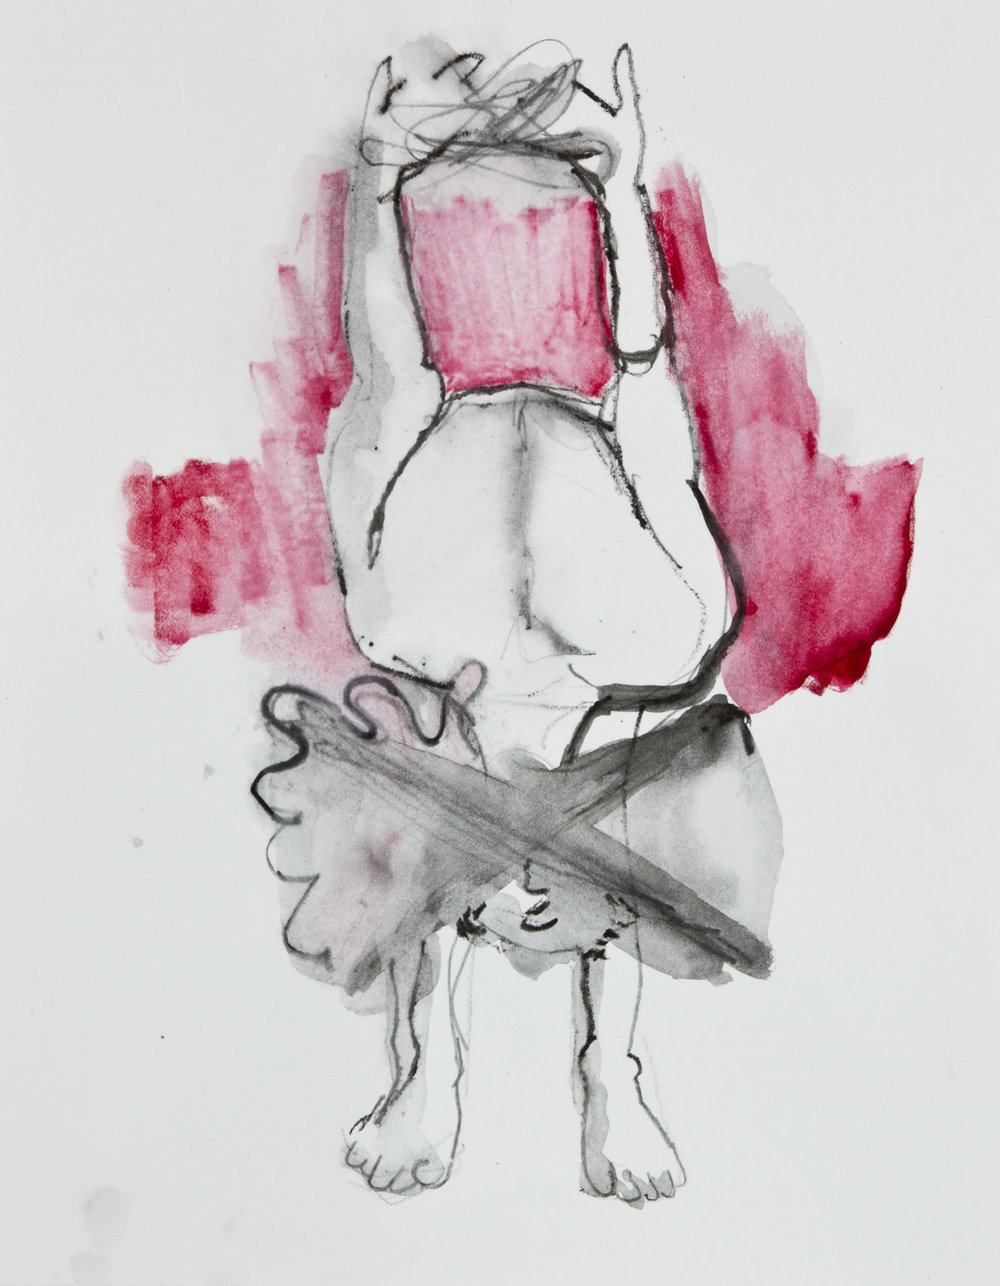 Longer By Stretching It, 2013, graphite, crayon and watercolor pencil on paper, 11x14 inches